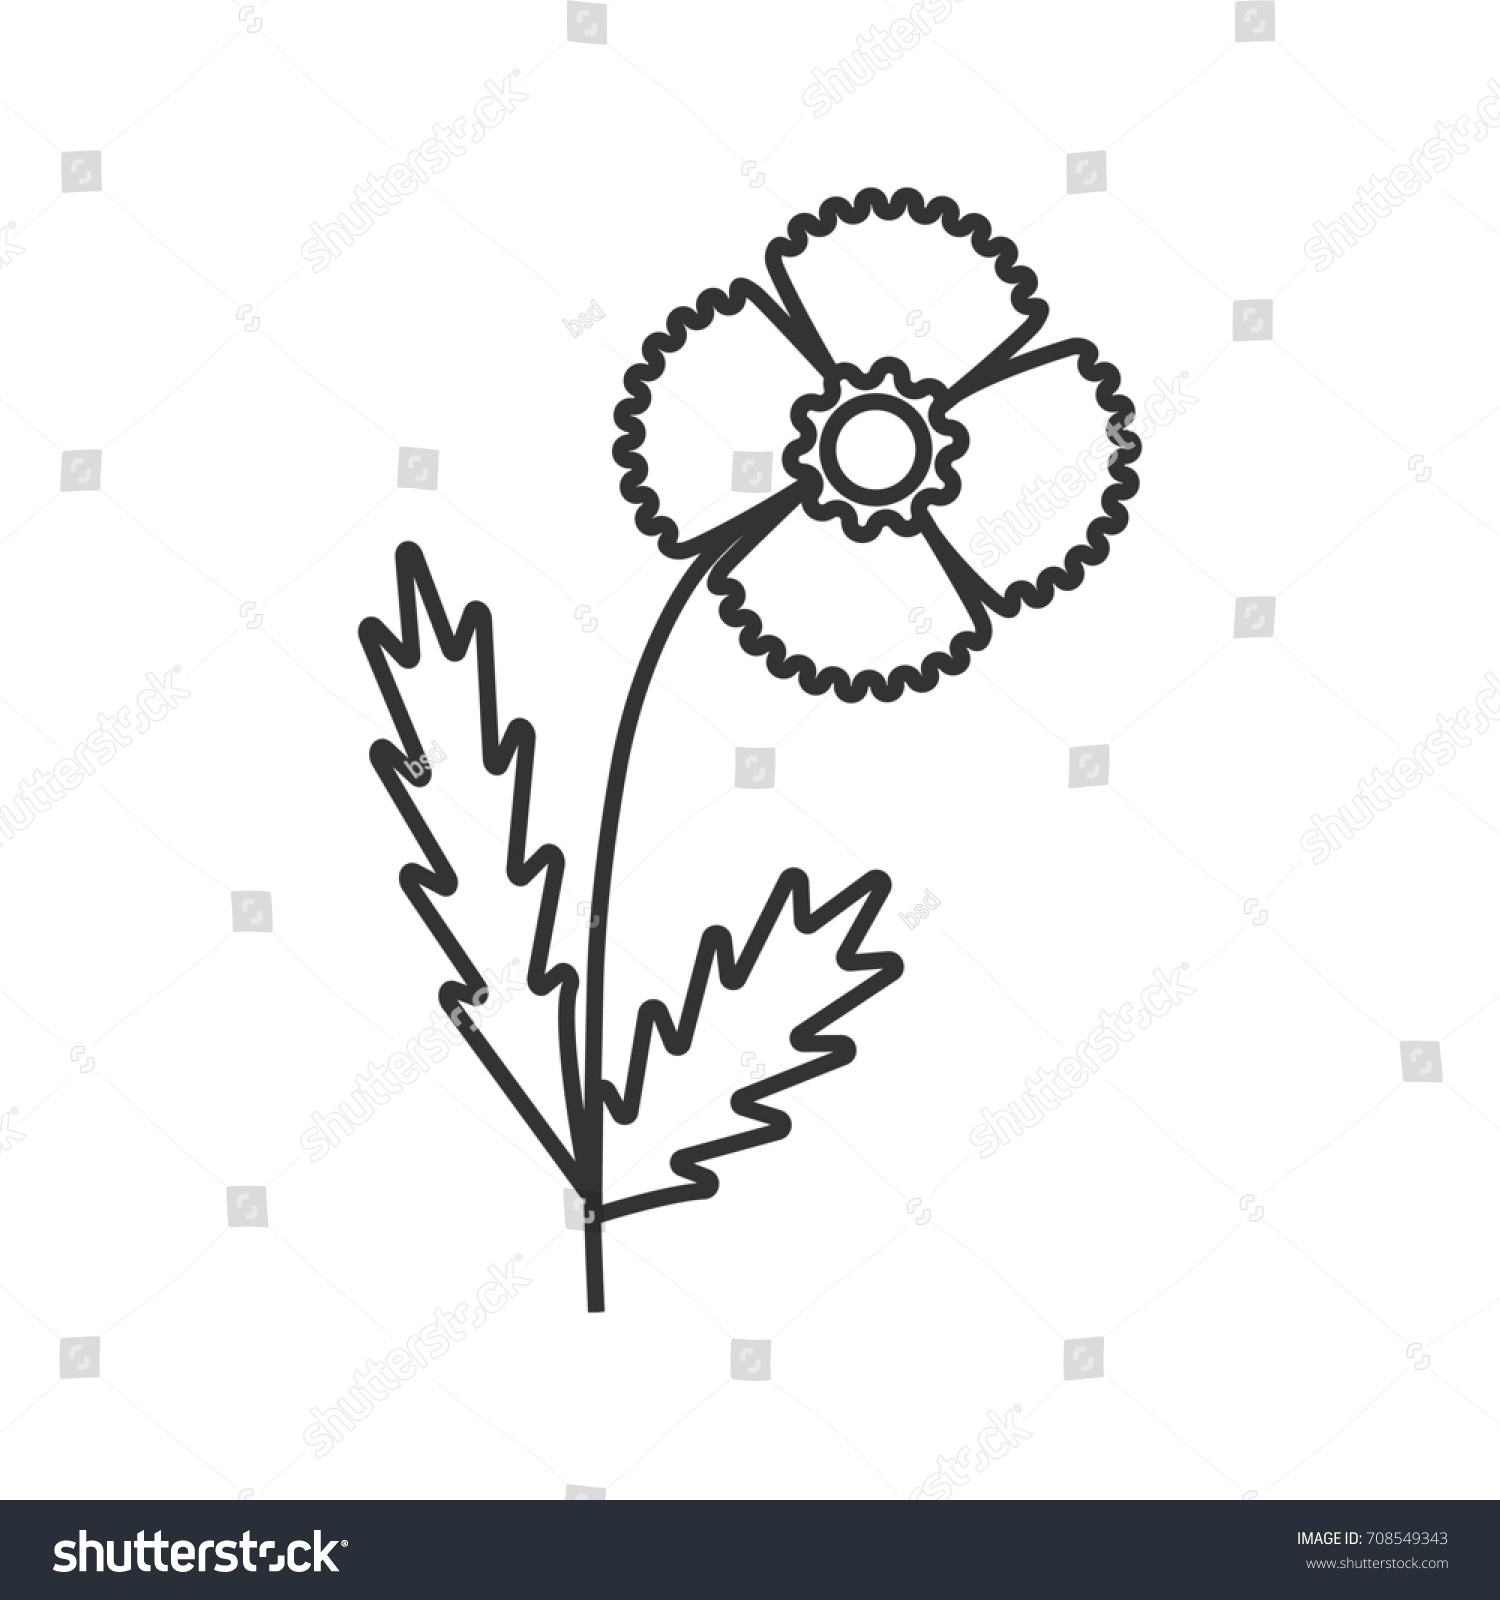 Poppy flower linear icon blooming plant stock illustration poppy flower linear icon blooming plant thin line illustration wildflower contour symbol raster buycottarizona